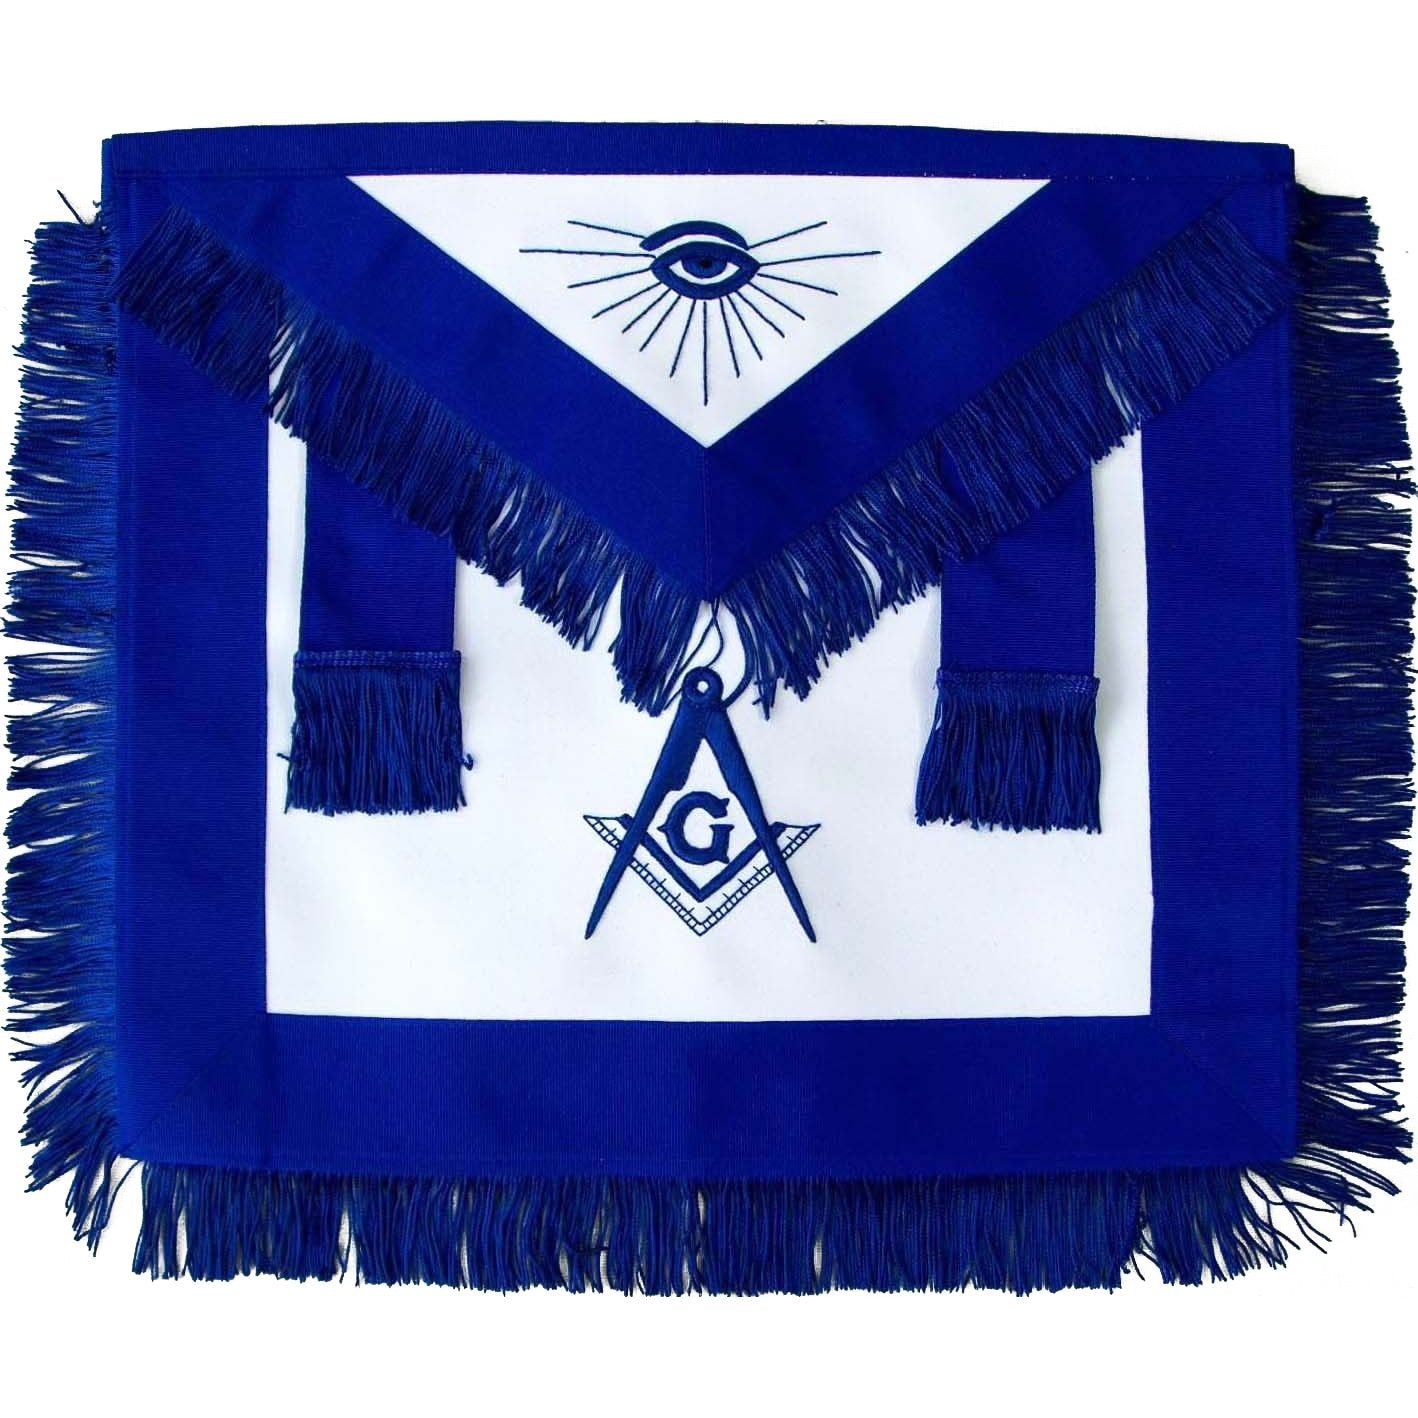 Masonic Master Mason Blue Lodge Apron Blue With Fringe - Bricks Masons